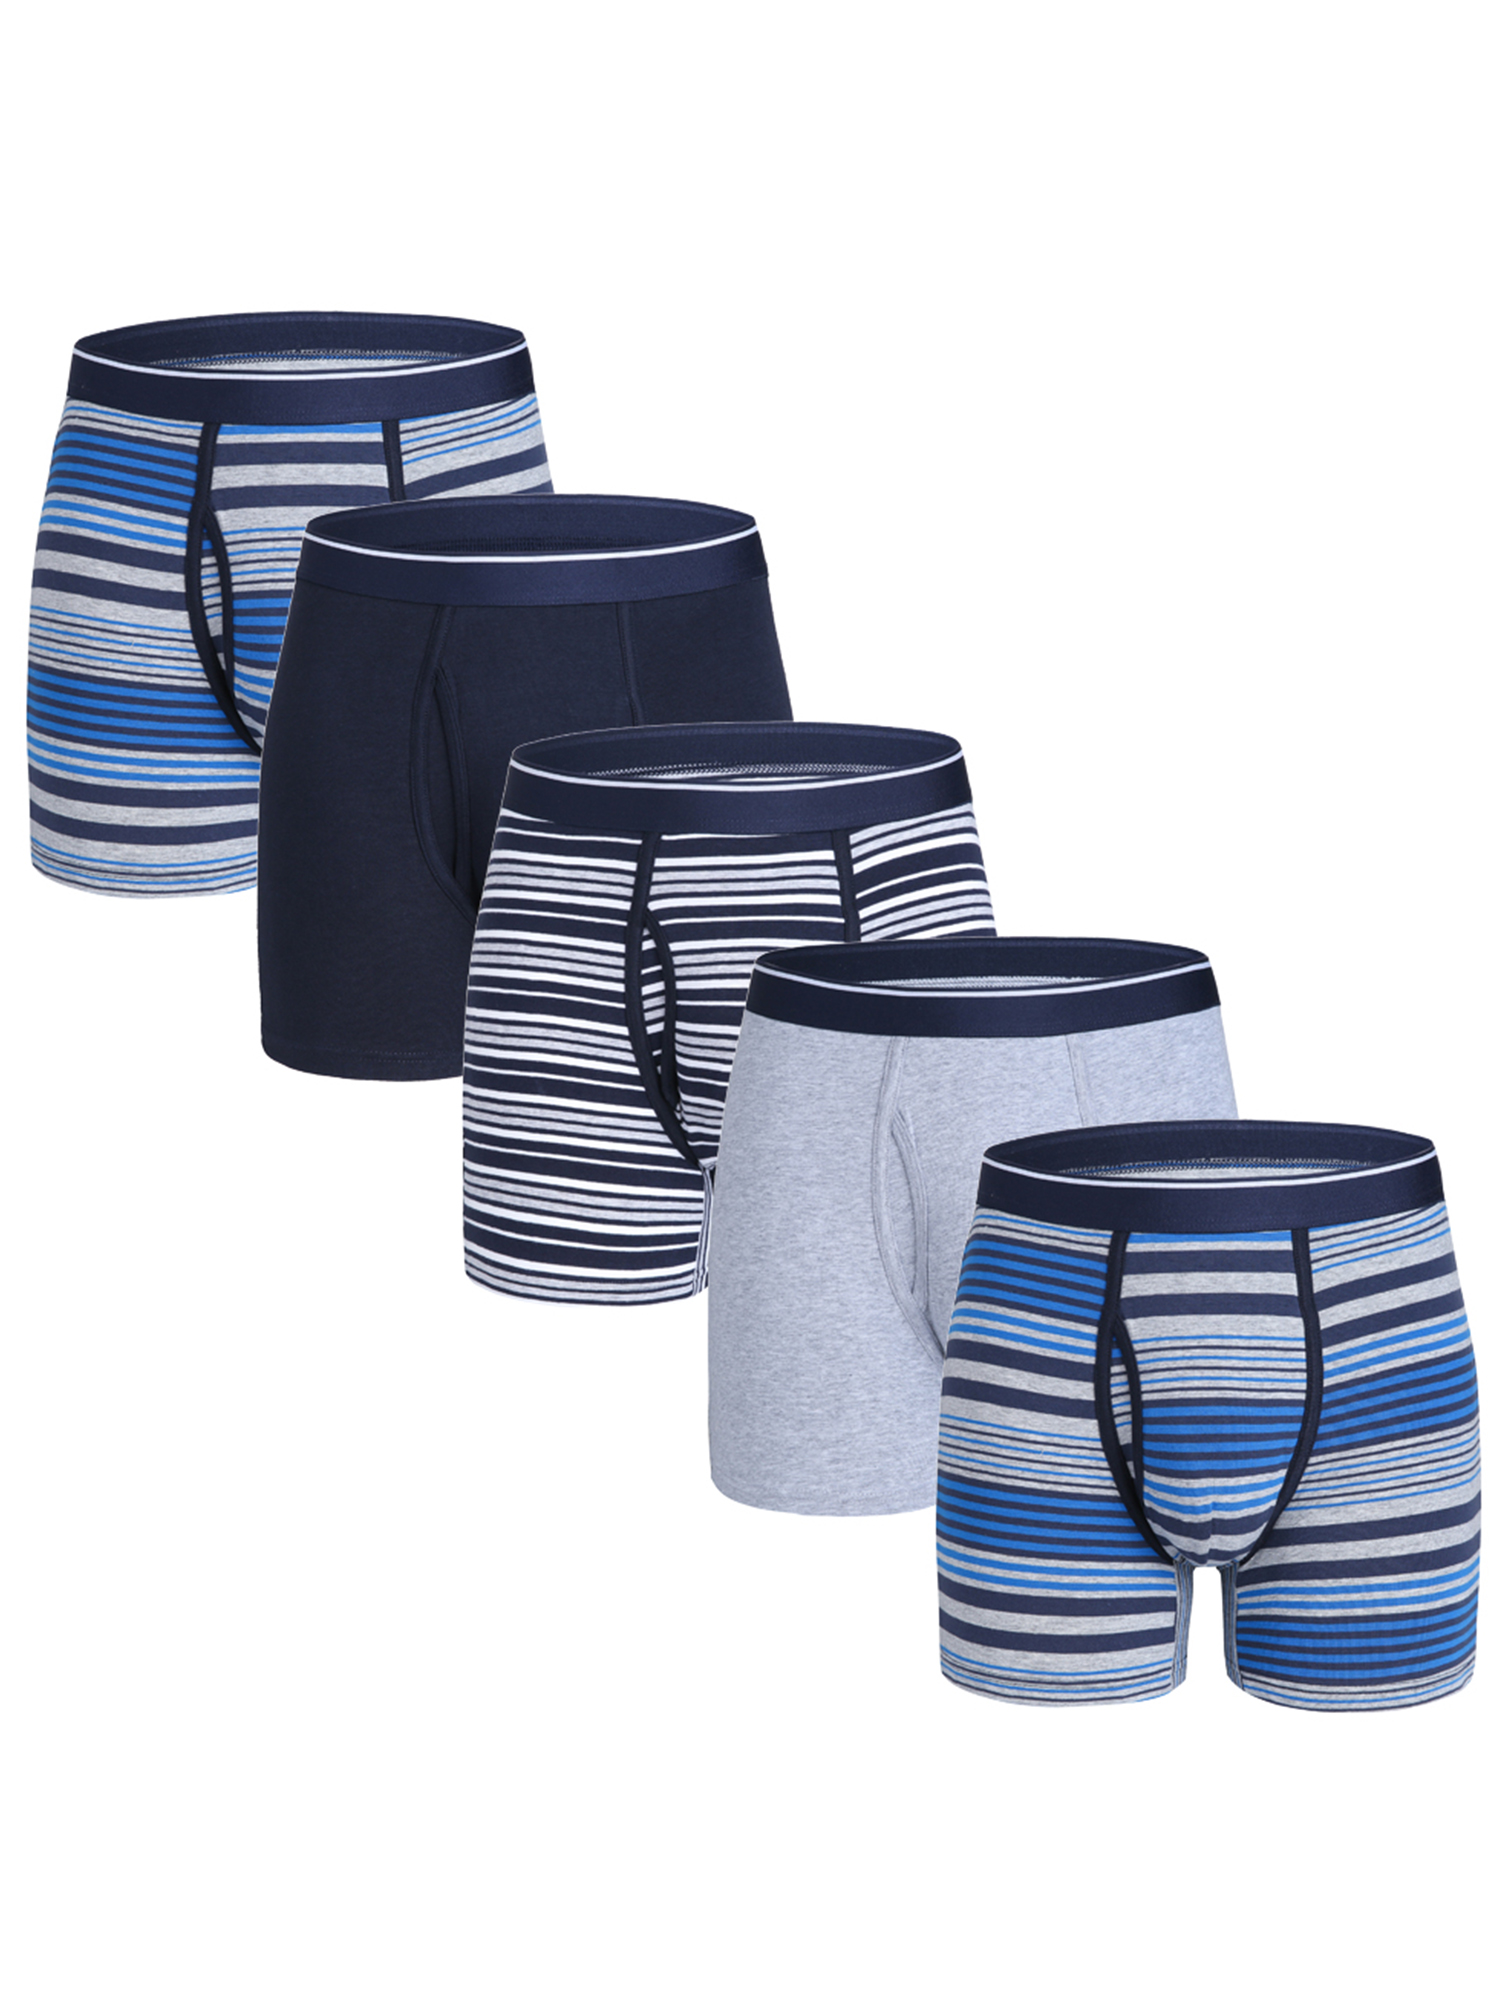 Cotton Underwear Comfy Breathable Tagless No Ride-up 6/'/' Regular Leg Sport Boxer Briefs with Fly Pack Mens Boxer Briefs